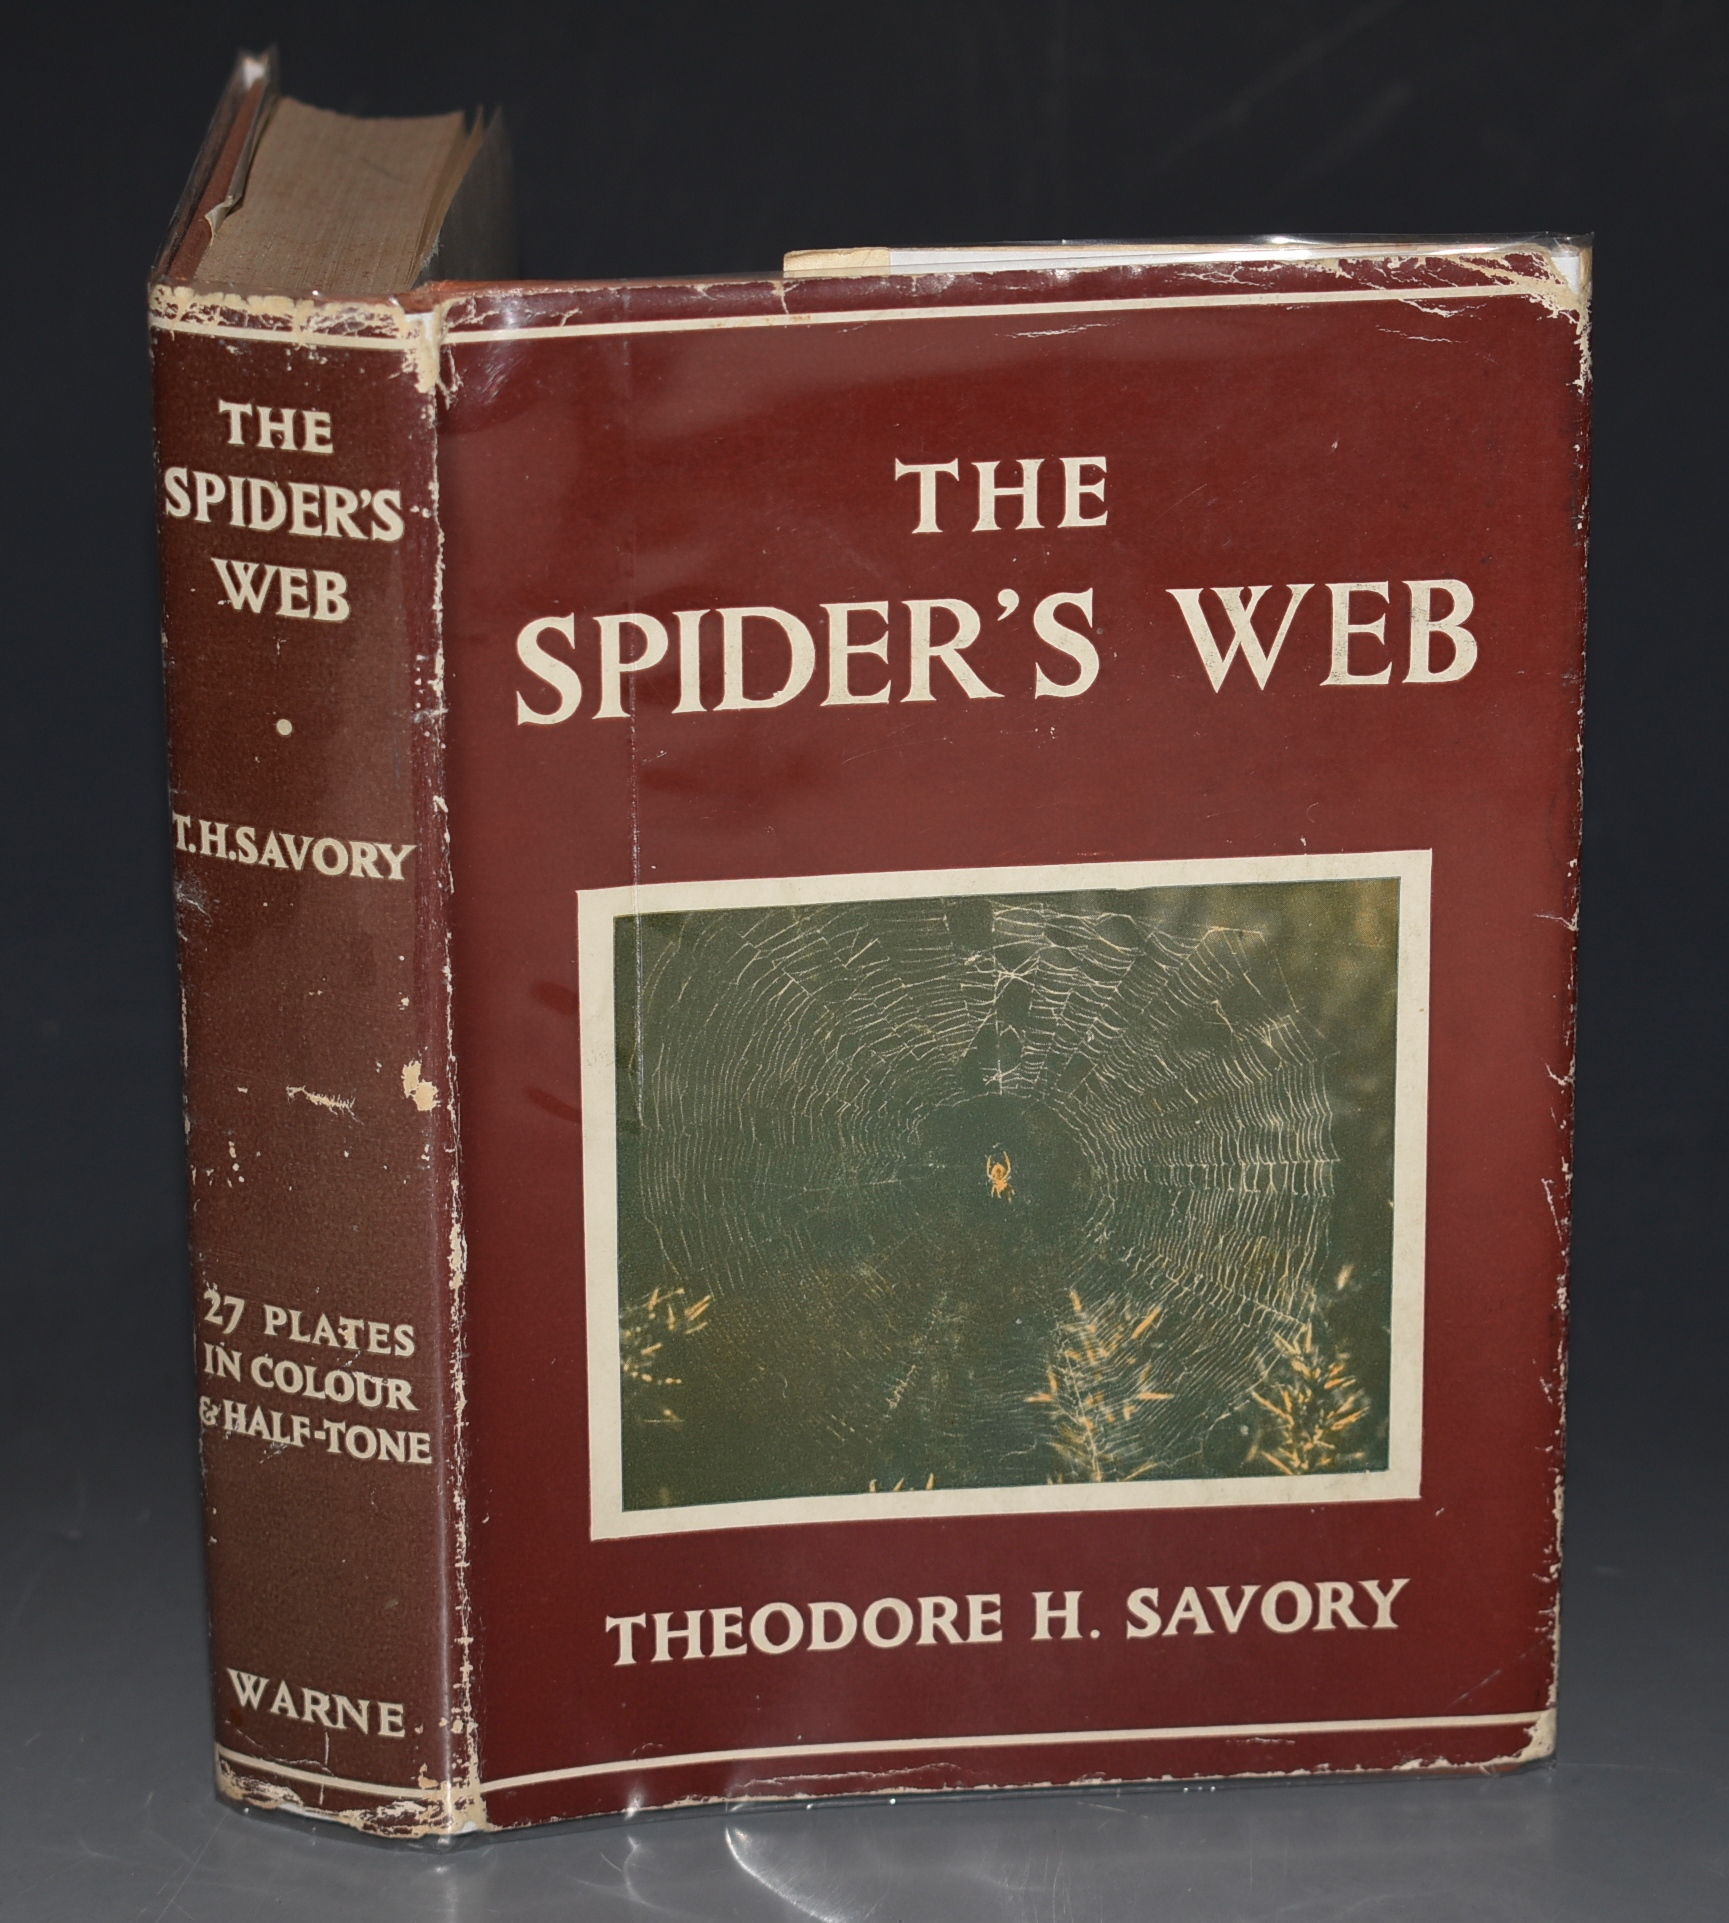 Image for The Spider's Web. With 8 plates in full colour, 19 half tone illustrations and 35 line drawings in the text.